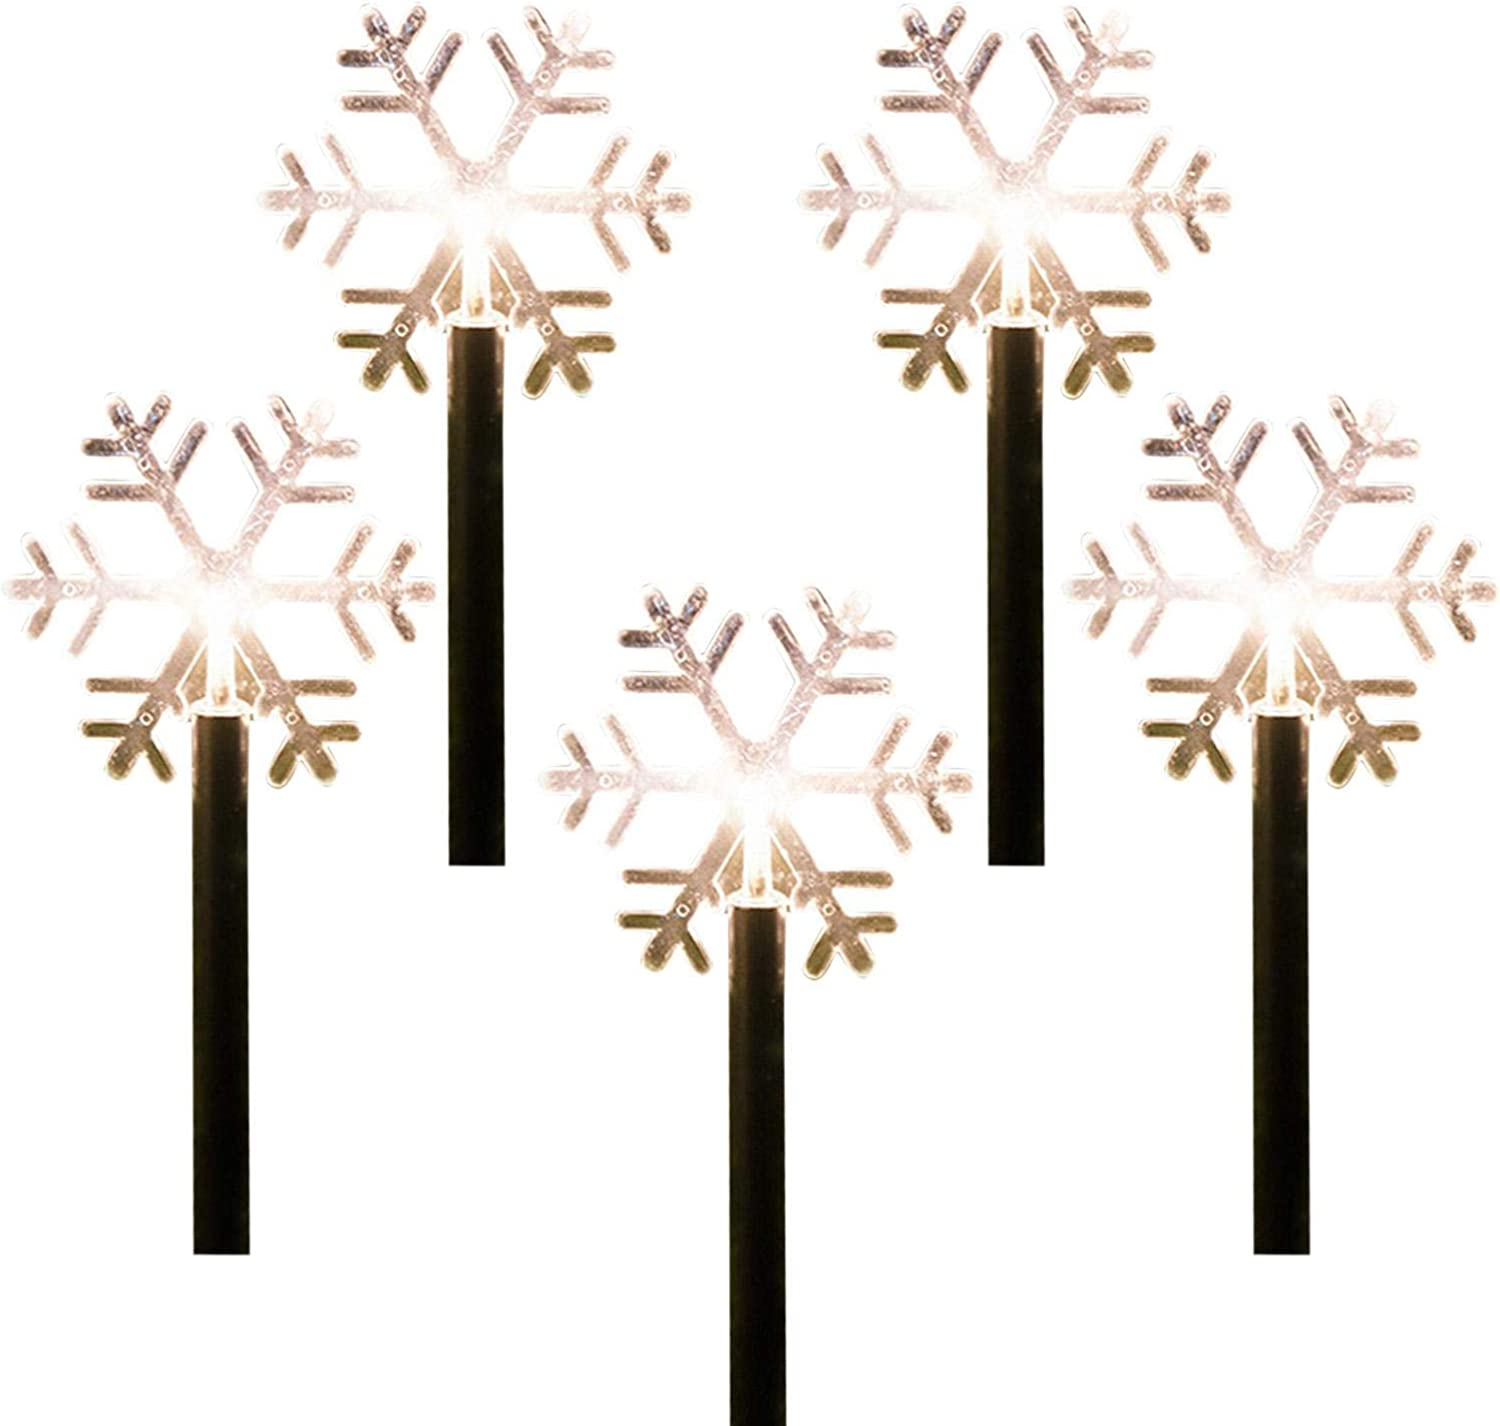 FEBUD Christmas Stake Light Outdoor Garden Light Snowflake/Christmas Tree/Star Pathway Light Christmas Decorations for Patio Walkway Yard Lawn (Batteries Not Included)